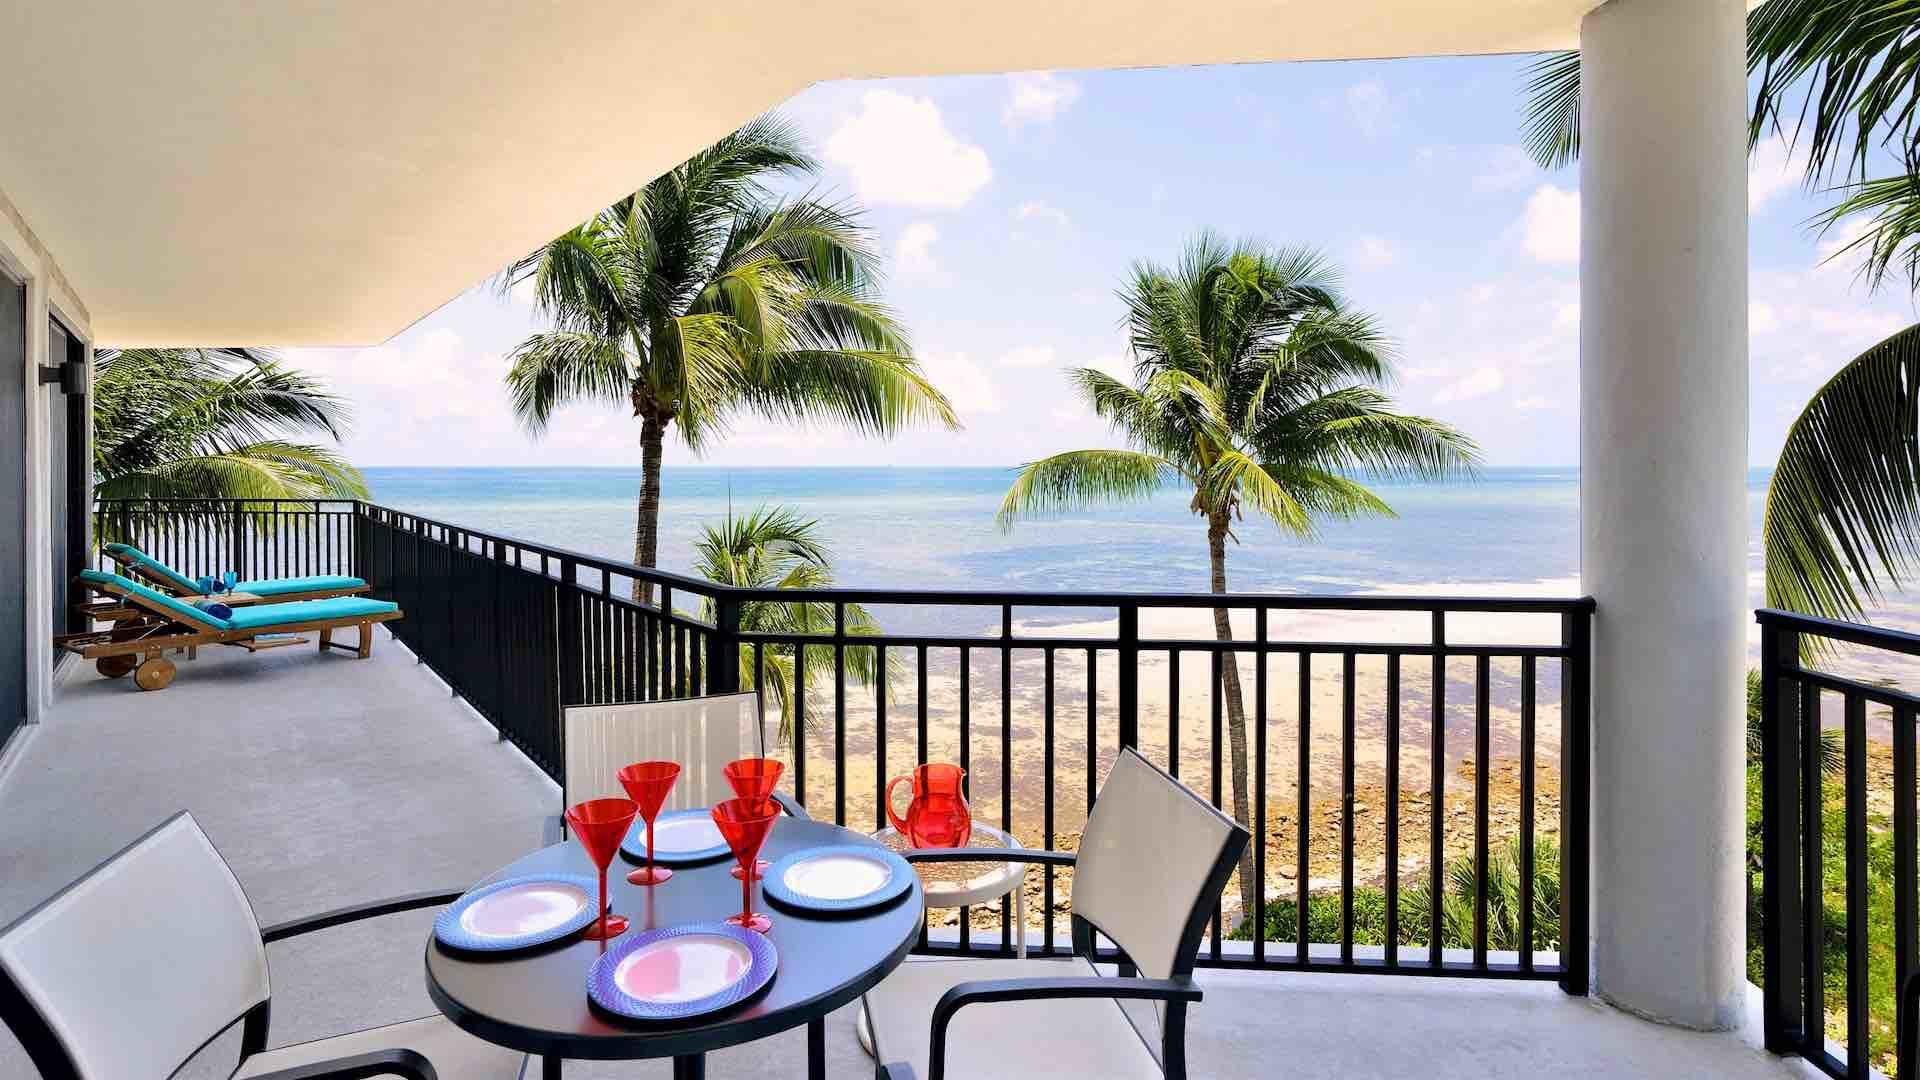 Oceanfront 3 bedroom condo in Key West available nightly